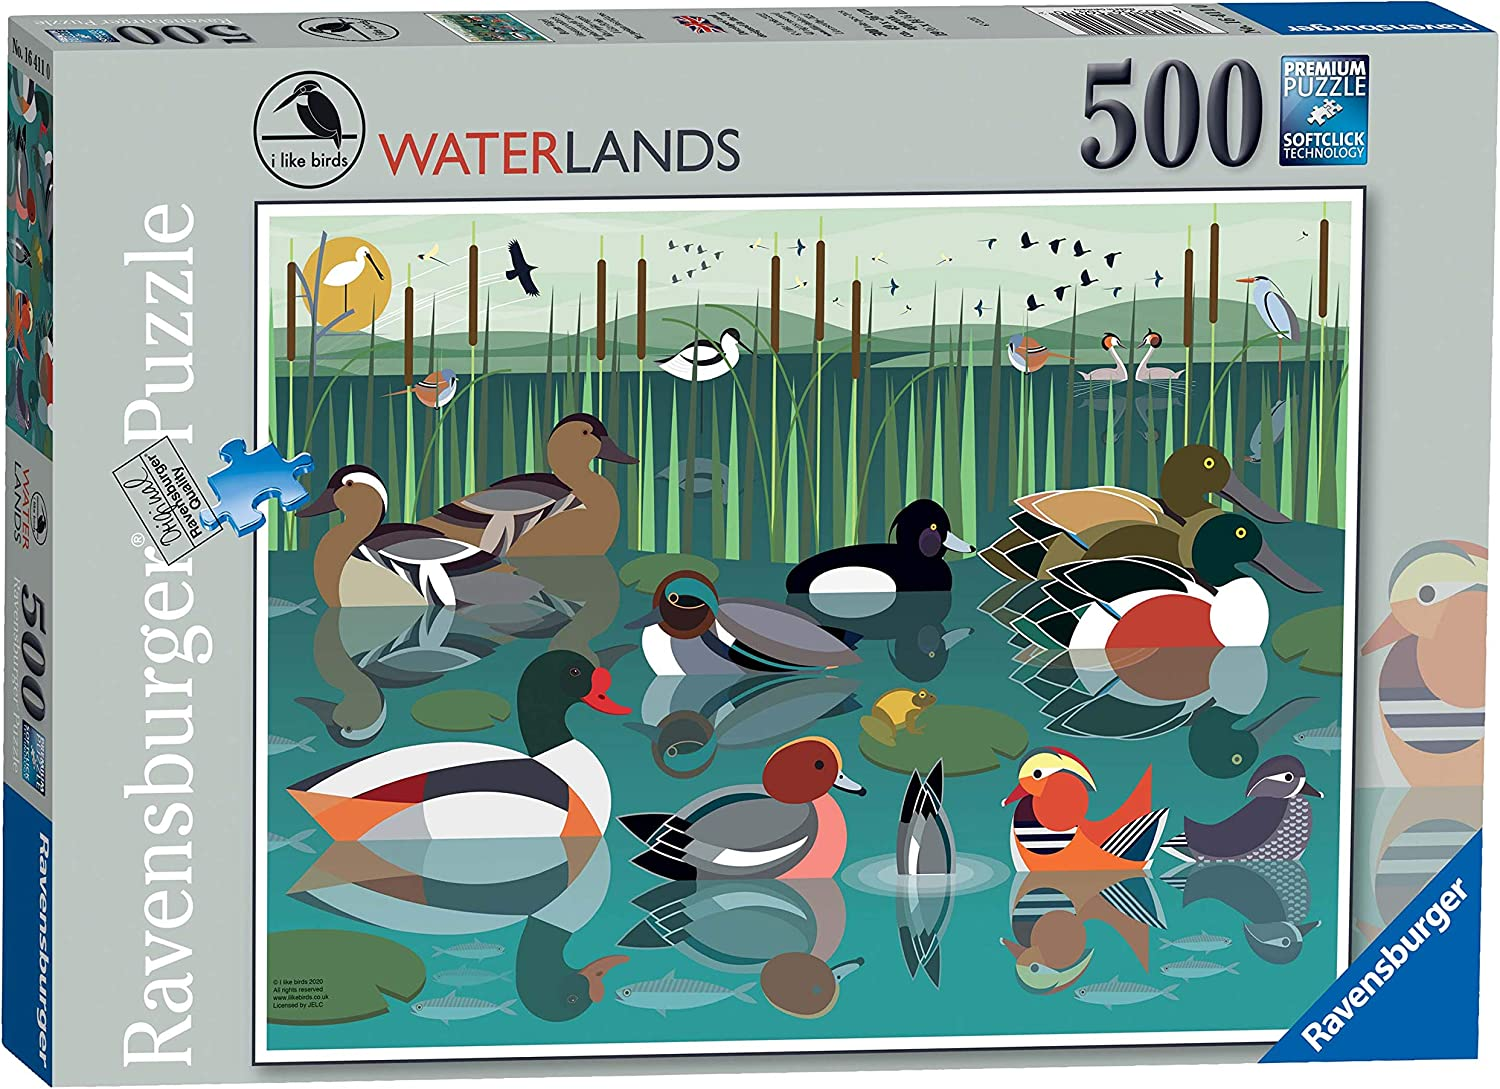 Ravensburger I Like Birds Waterlands 500 Piece Jigsaw Puzzle for Adults Kids Age 10 and Up